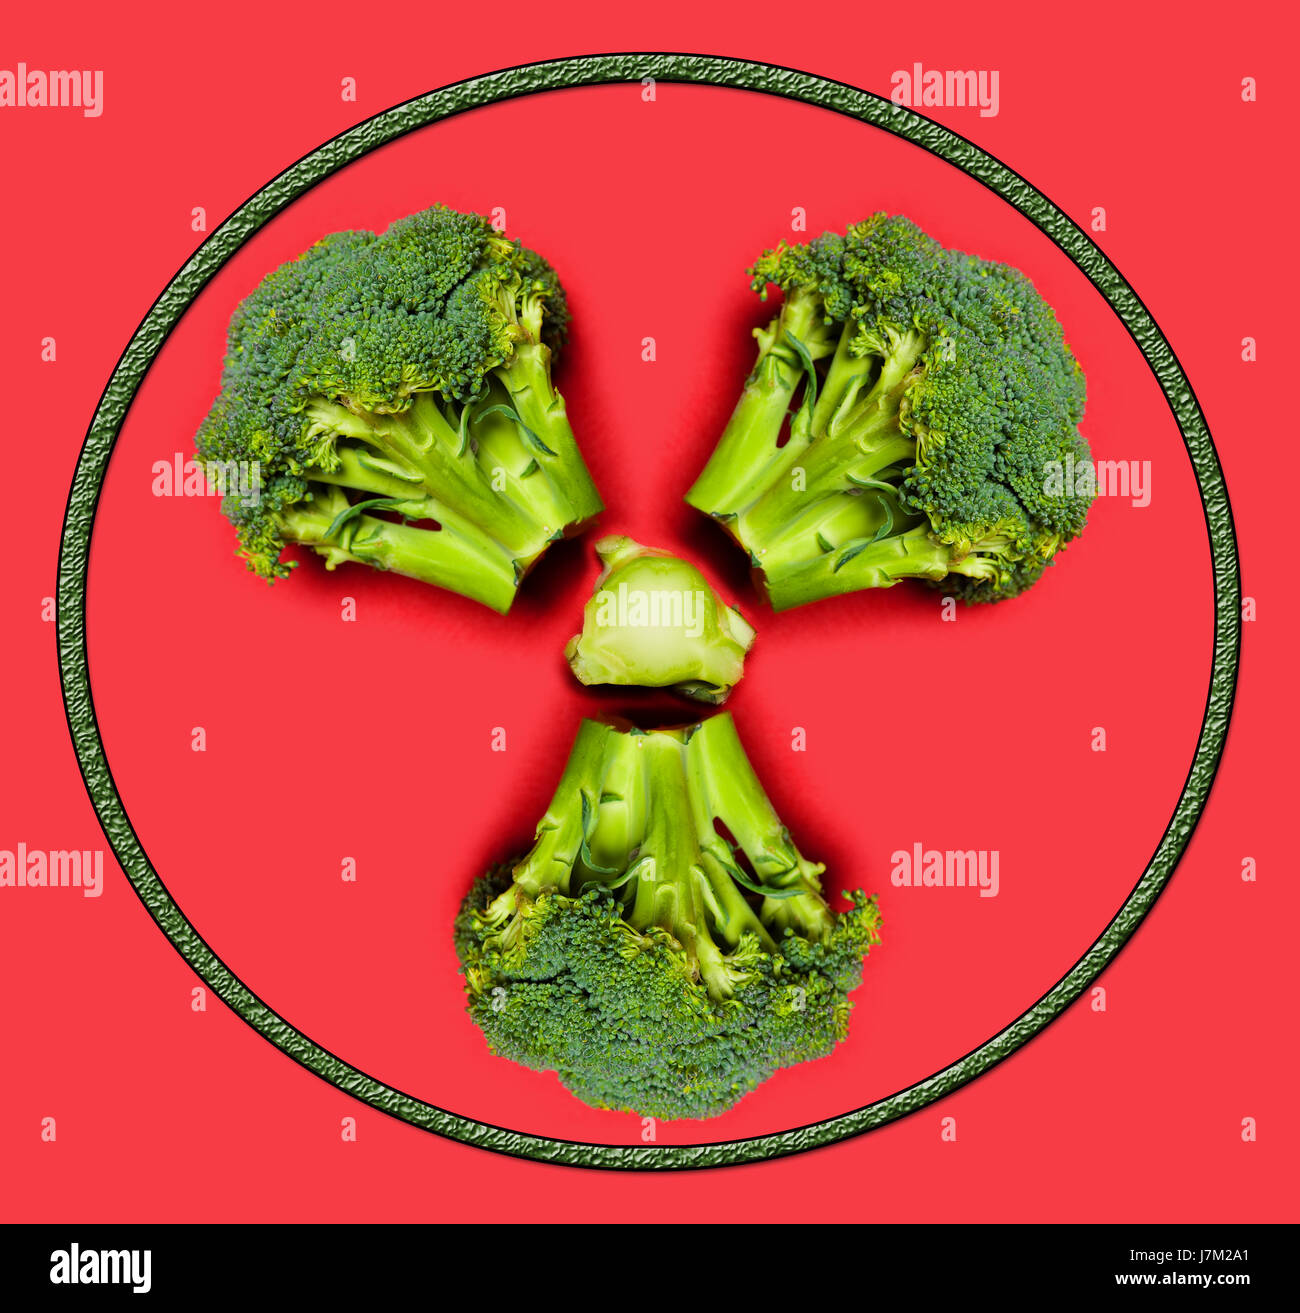 Food irradiation stock photos food irradiation stock images alamy food aliment poison radioactive pictogram symbol pictograph trade symbol danger stock image biocorpaavc